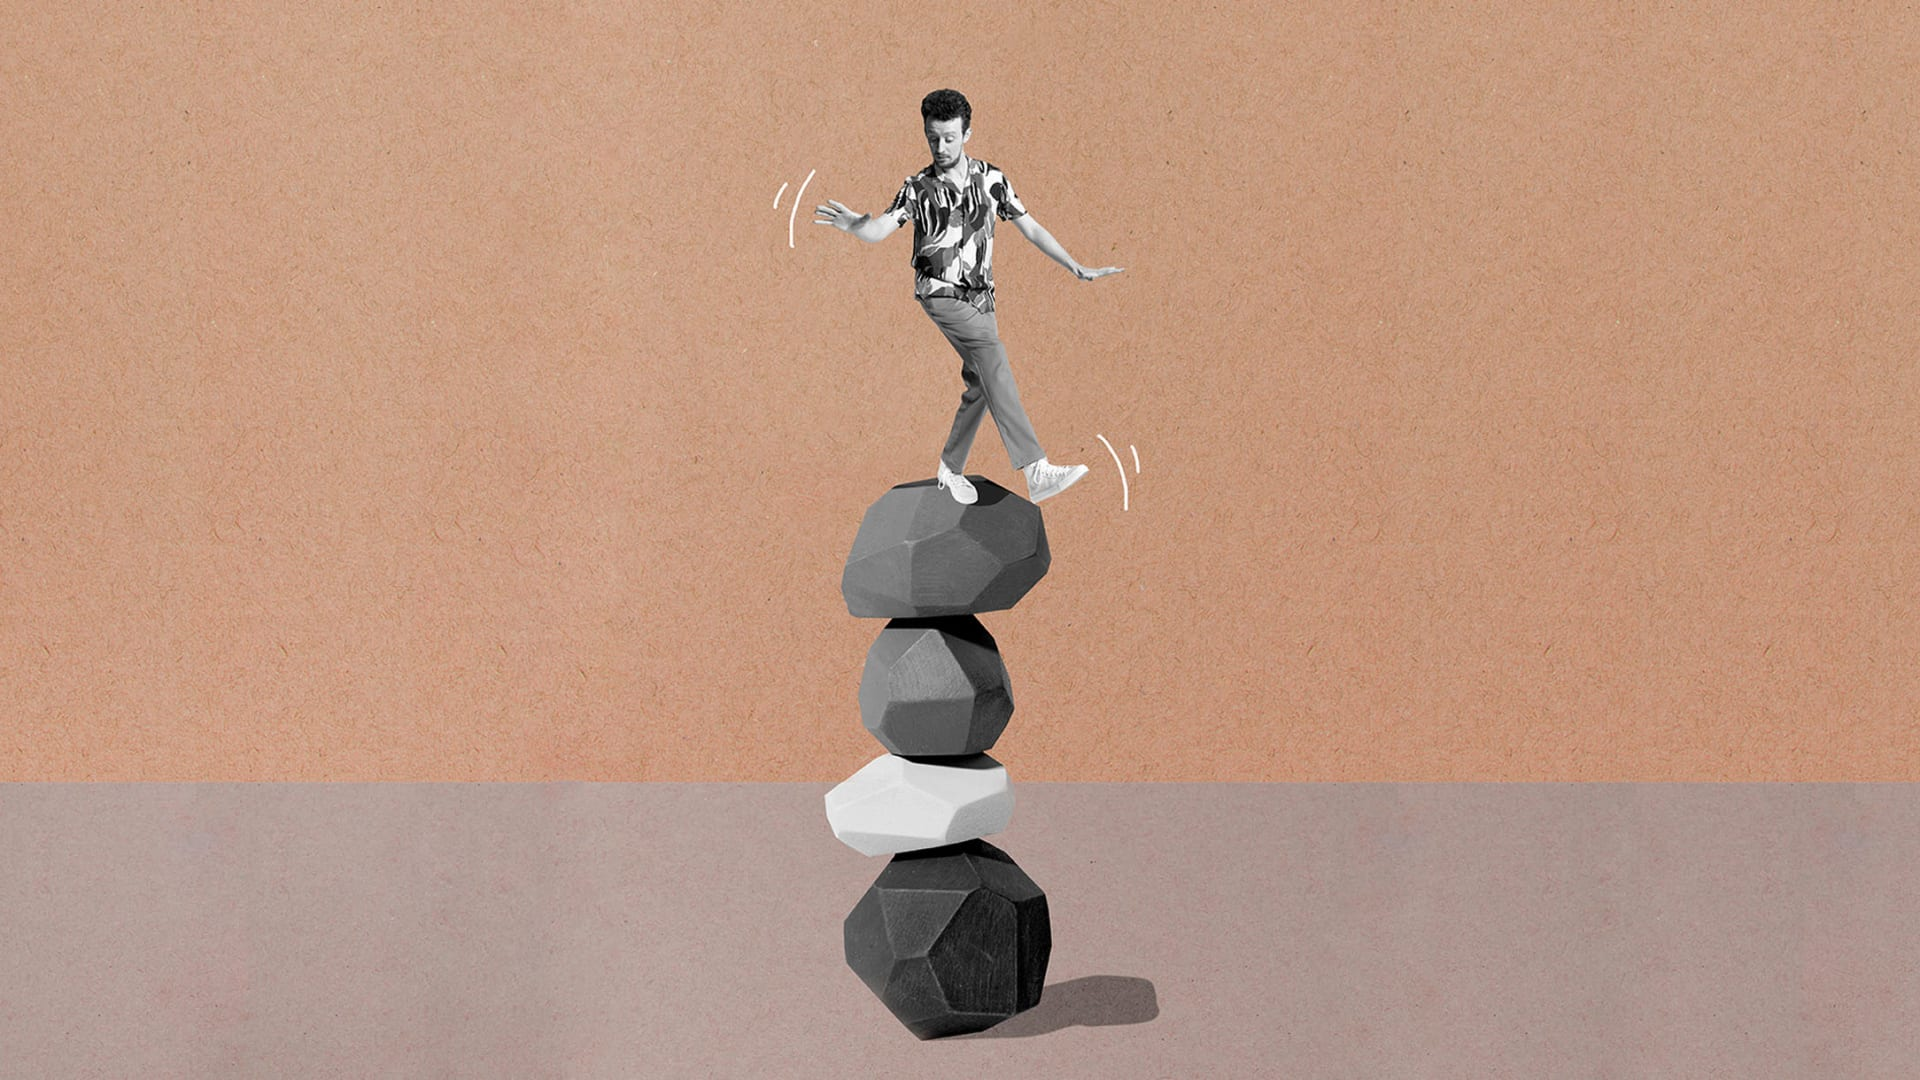 7 Principles for New Entrepreneurs to Balance Passion and Logic